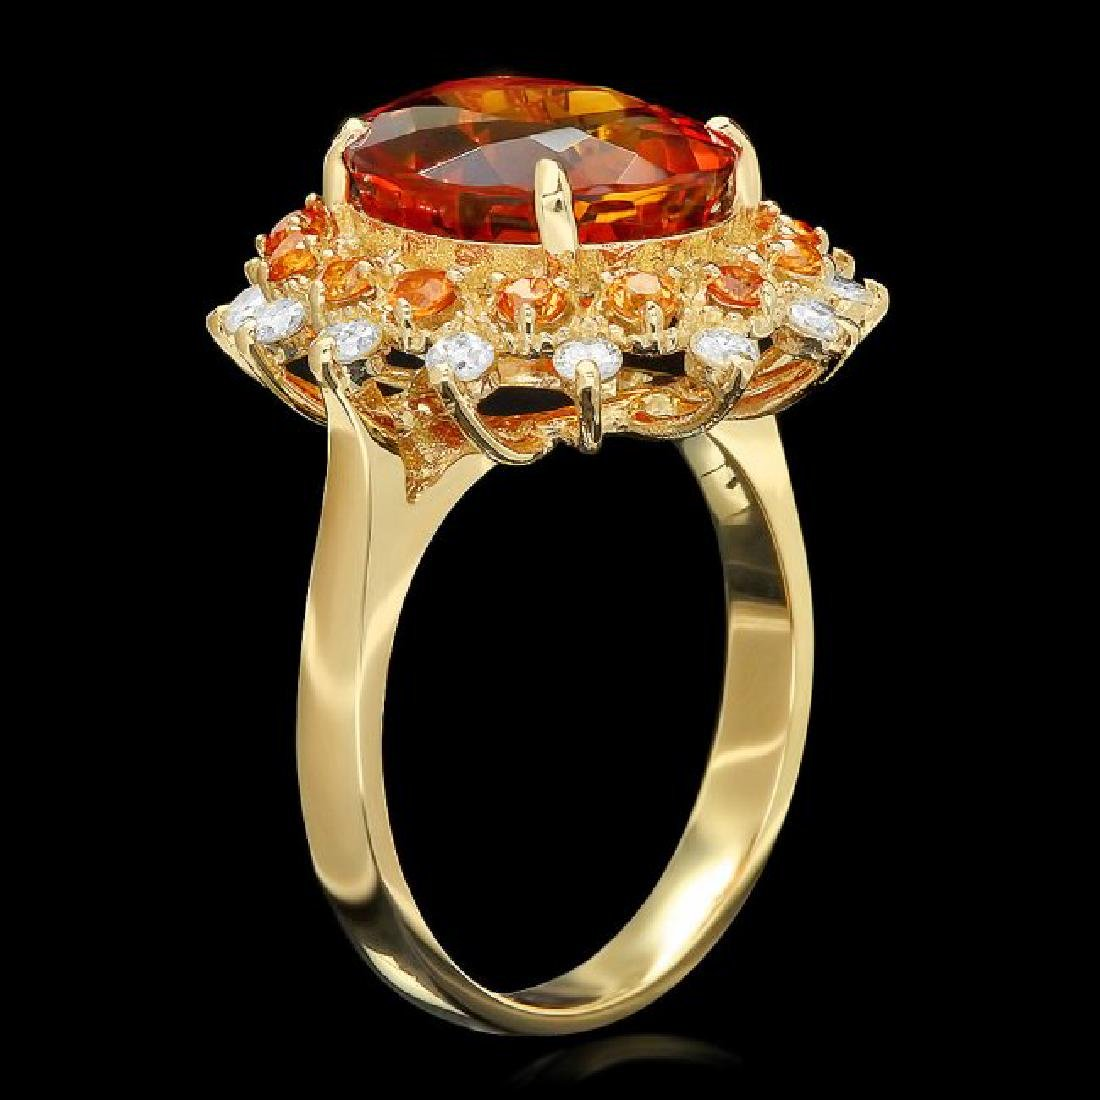 14k Gold 5.00ct Citrine 0.40ct Diamond Ring - 2